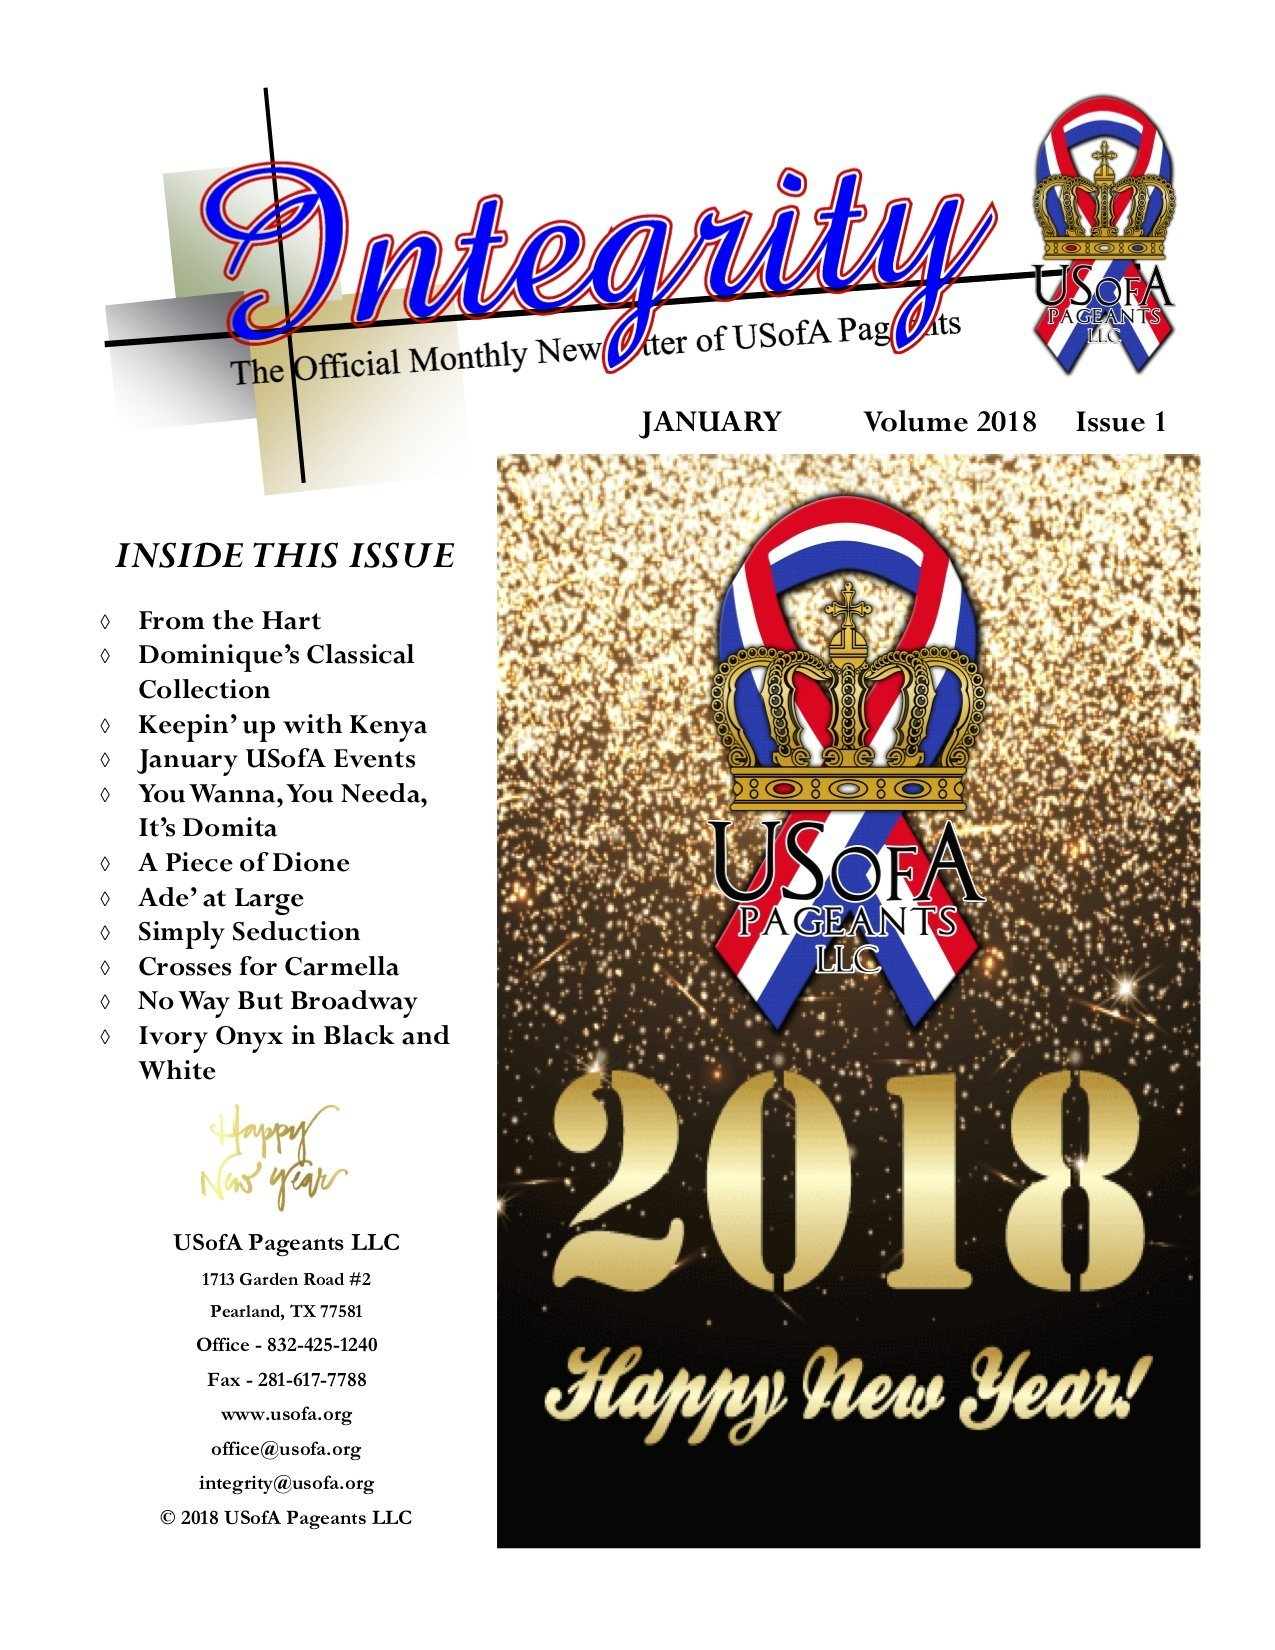 USofA Pageants Integrity Newsletter January 2018